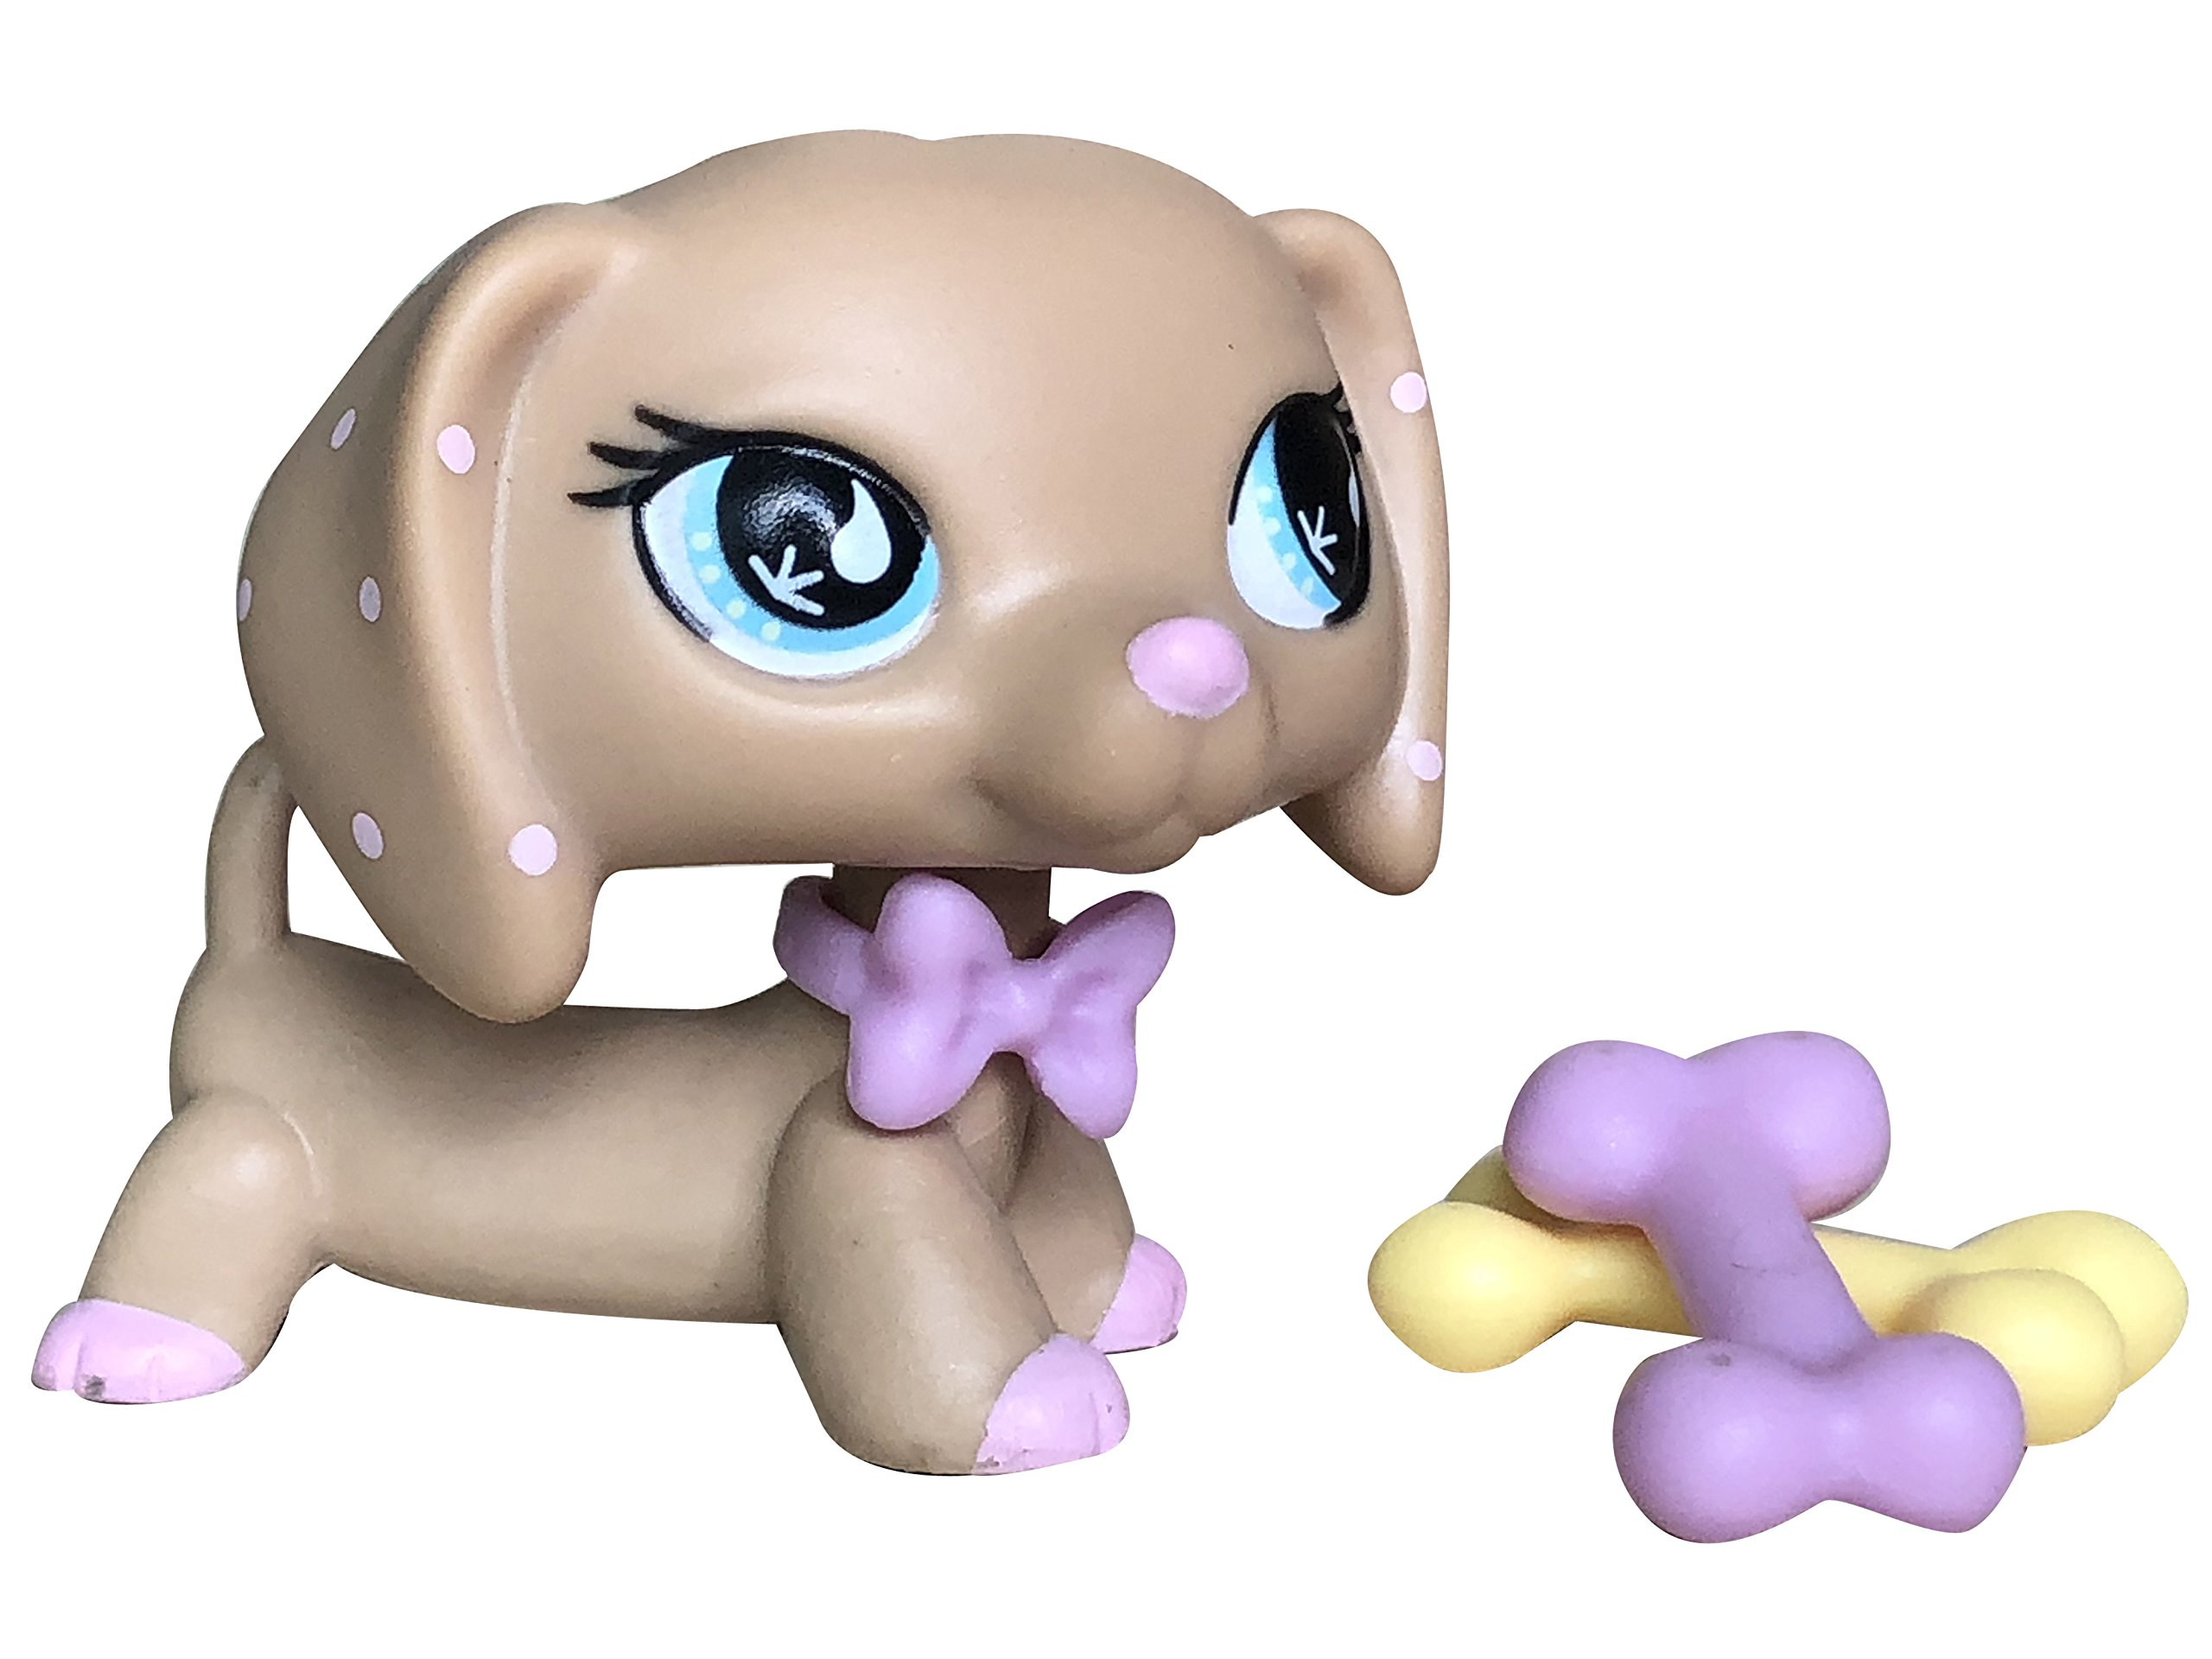 Toy Rare LPS Dachshund 909 Tan Dog Blue Eyes Puppy with Accessories Collection Toys Figure Rare Girl's Gift USA Warehouse